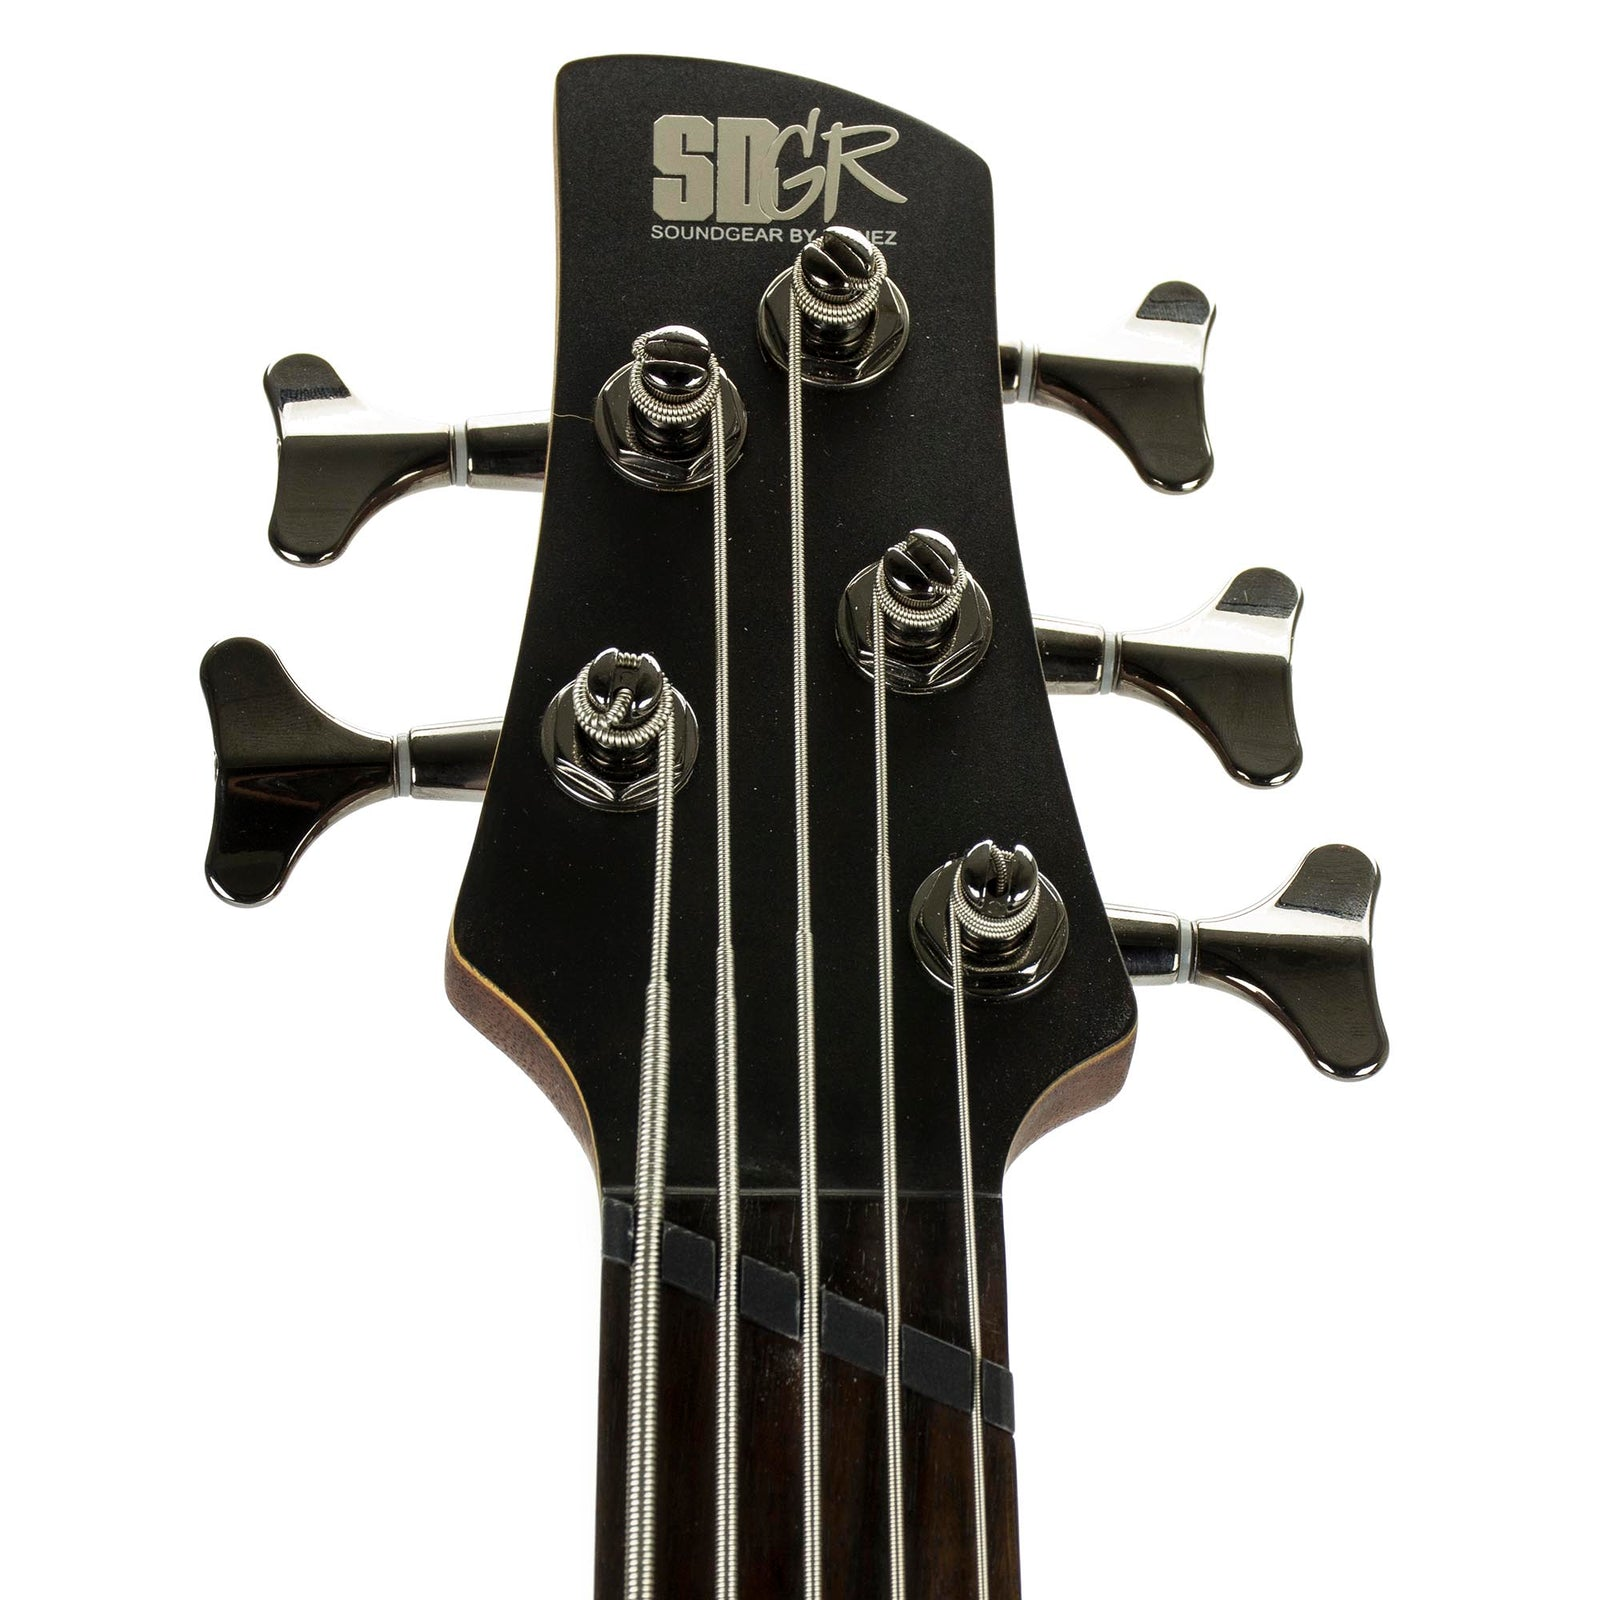 Ibanez Bass Workshop Series 5-String Fanned Fret Bass SRFF805 - Walnut Flat - Used - Image: 5